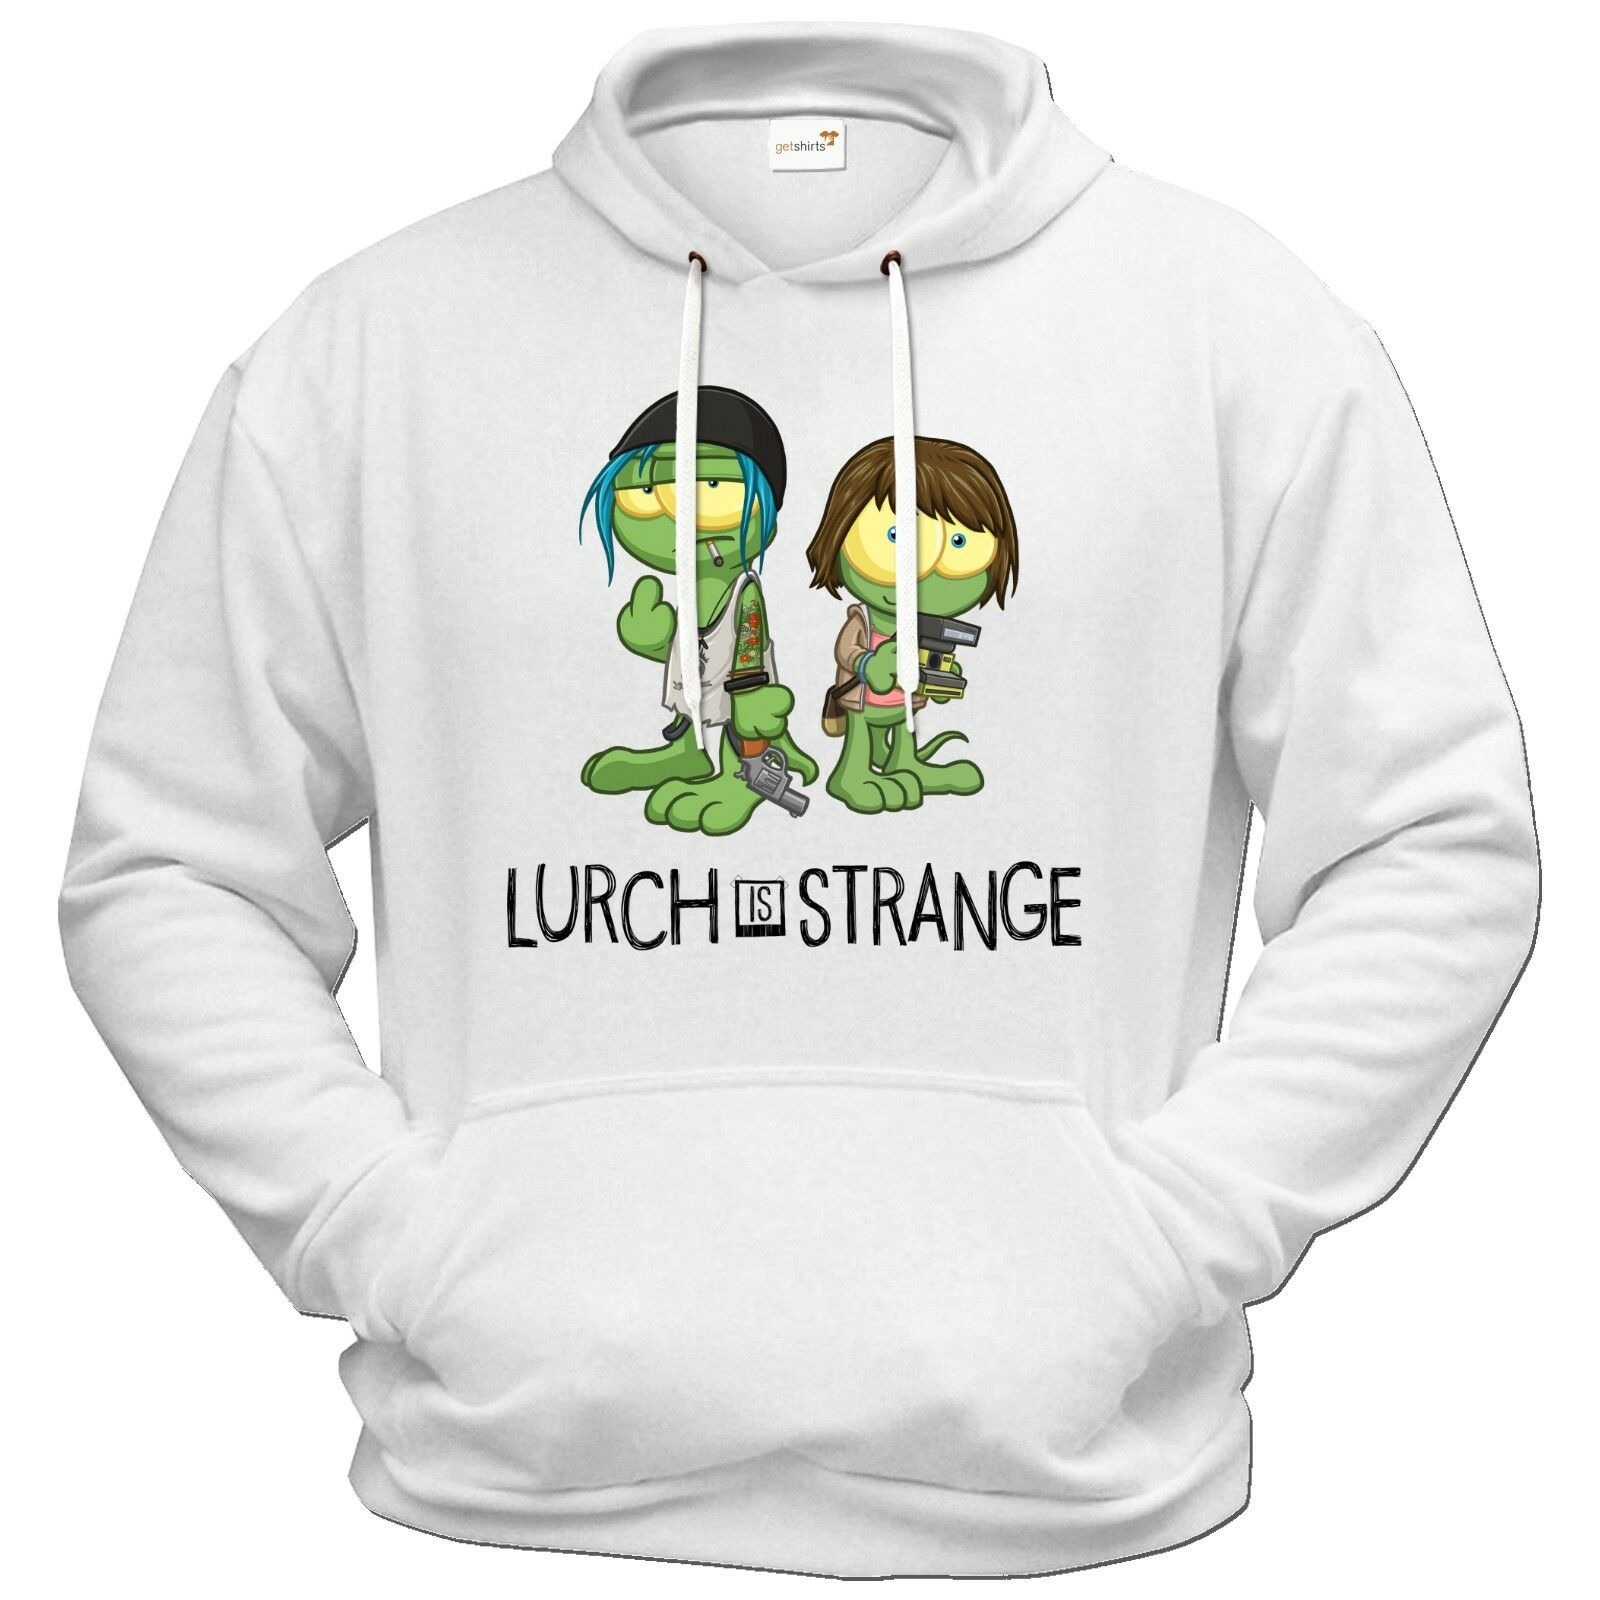 Getshirts - Gronkh Official Merchandising Merchandising Merchandising - Hoodie - Lurch is Strange Max & Ch.. | Quality First